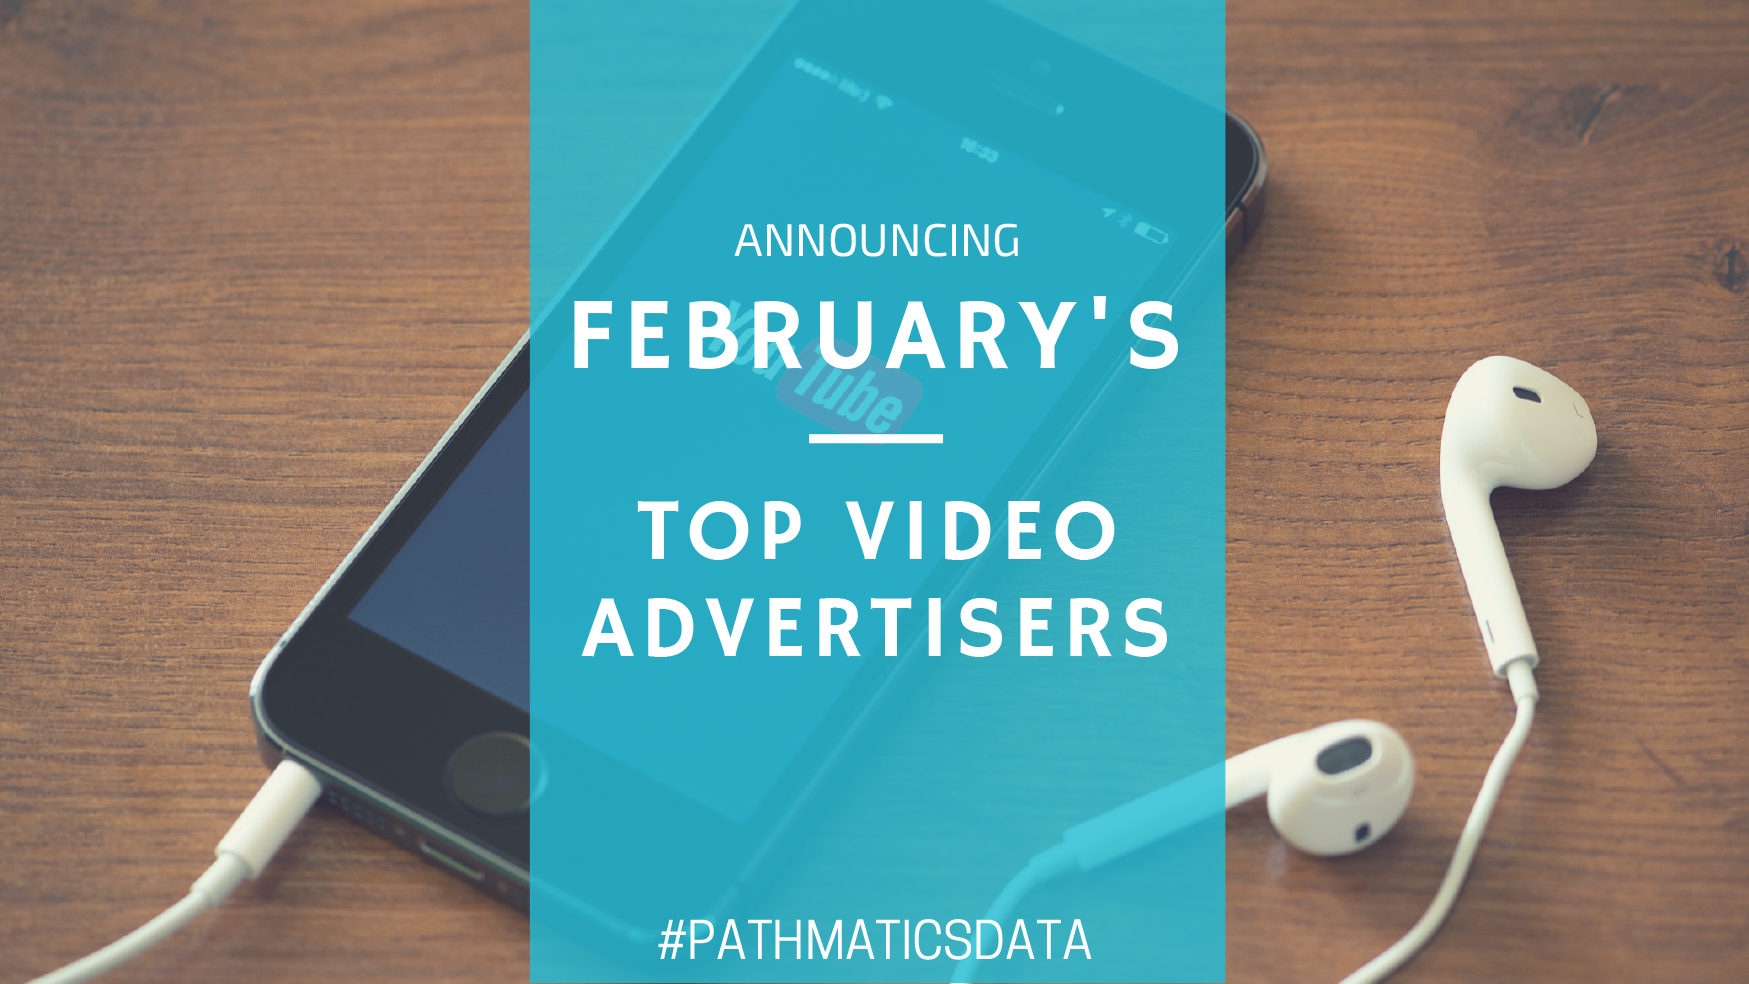 Feb-top-video-advertiser-blog-header